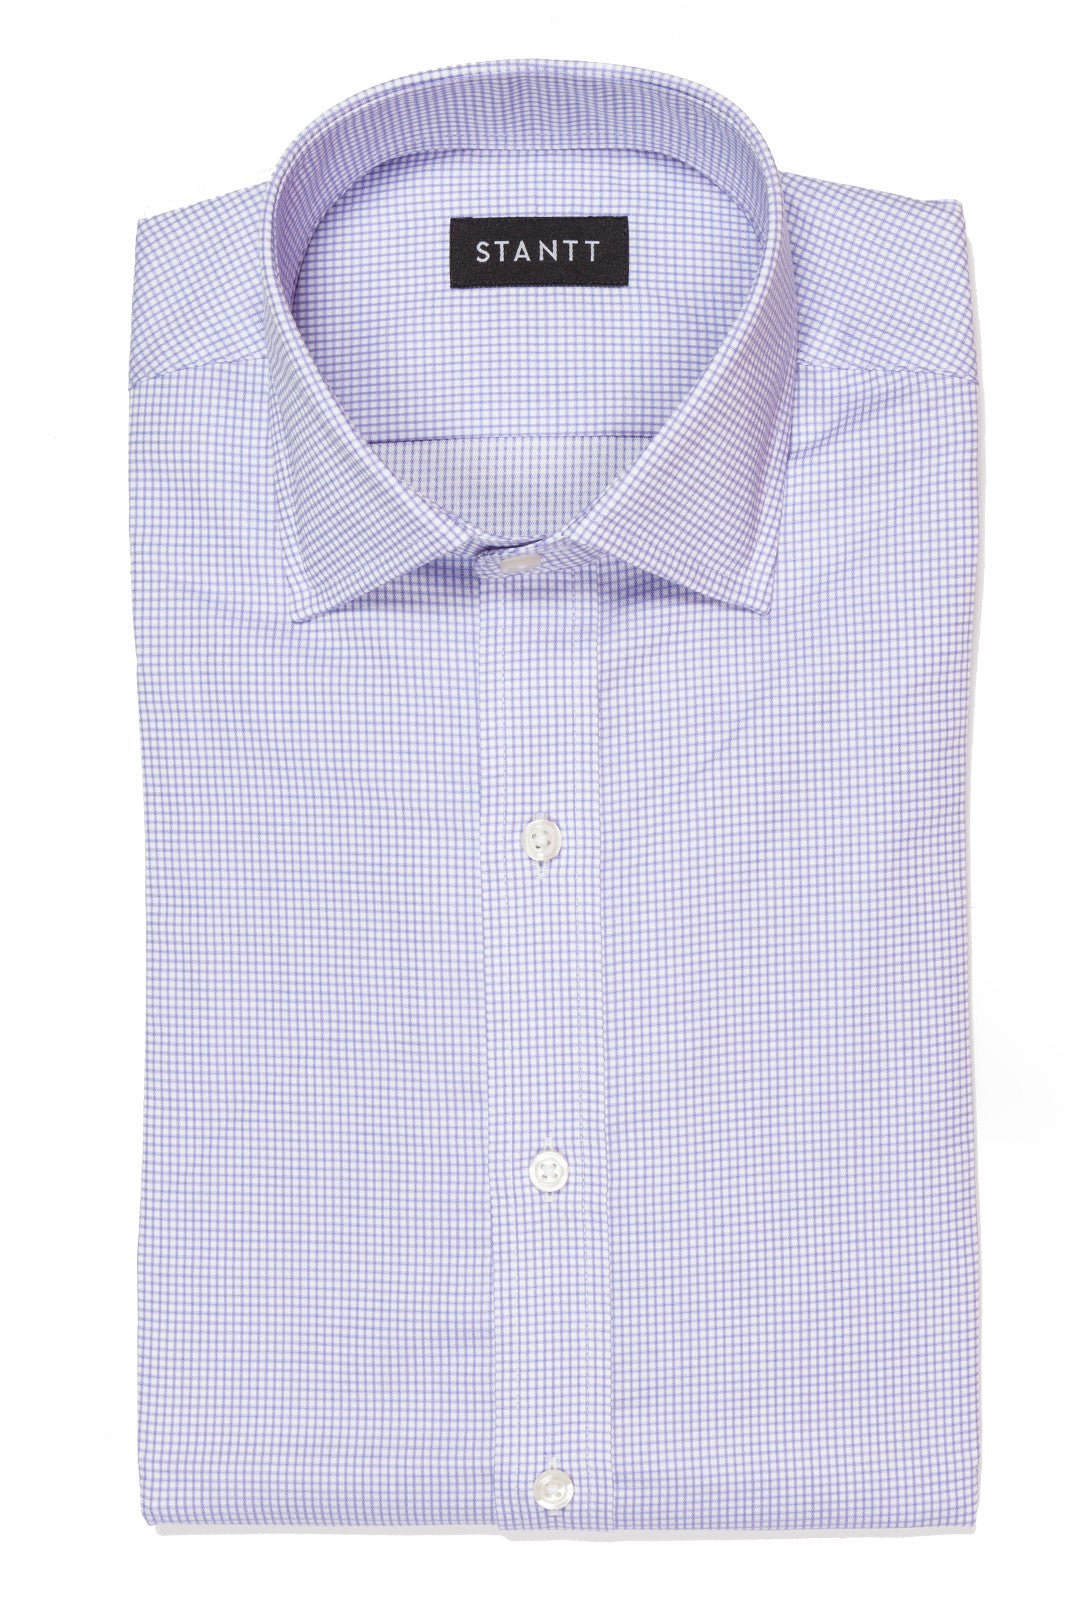 Wrinkle-Resistant Purple Accented Mini-Check: Semi-Spread Collar, French Cuff